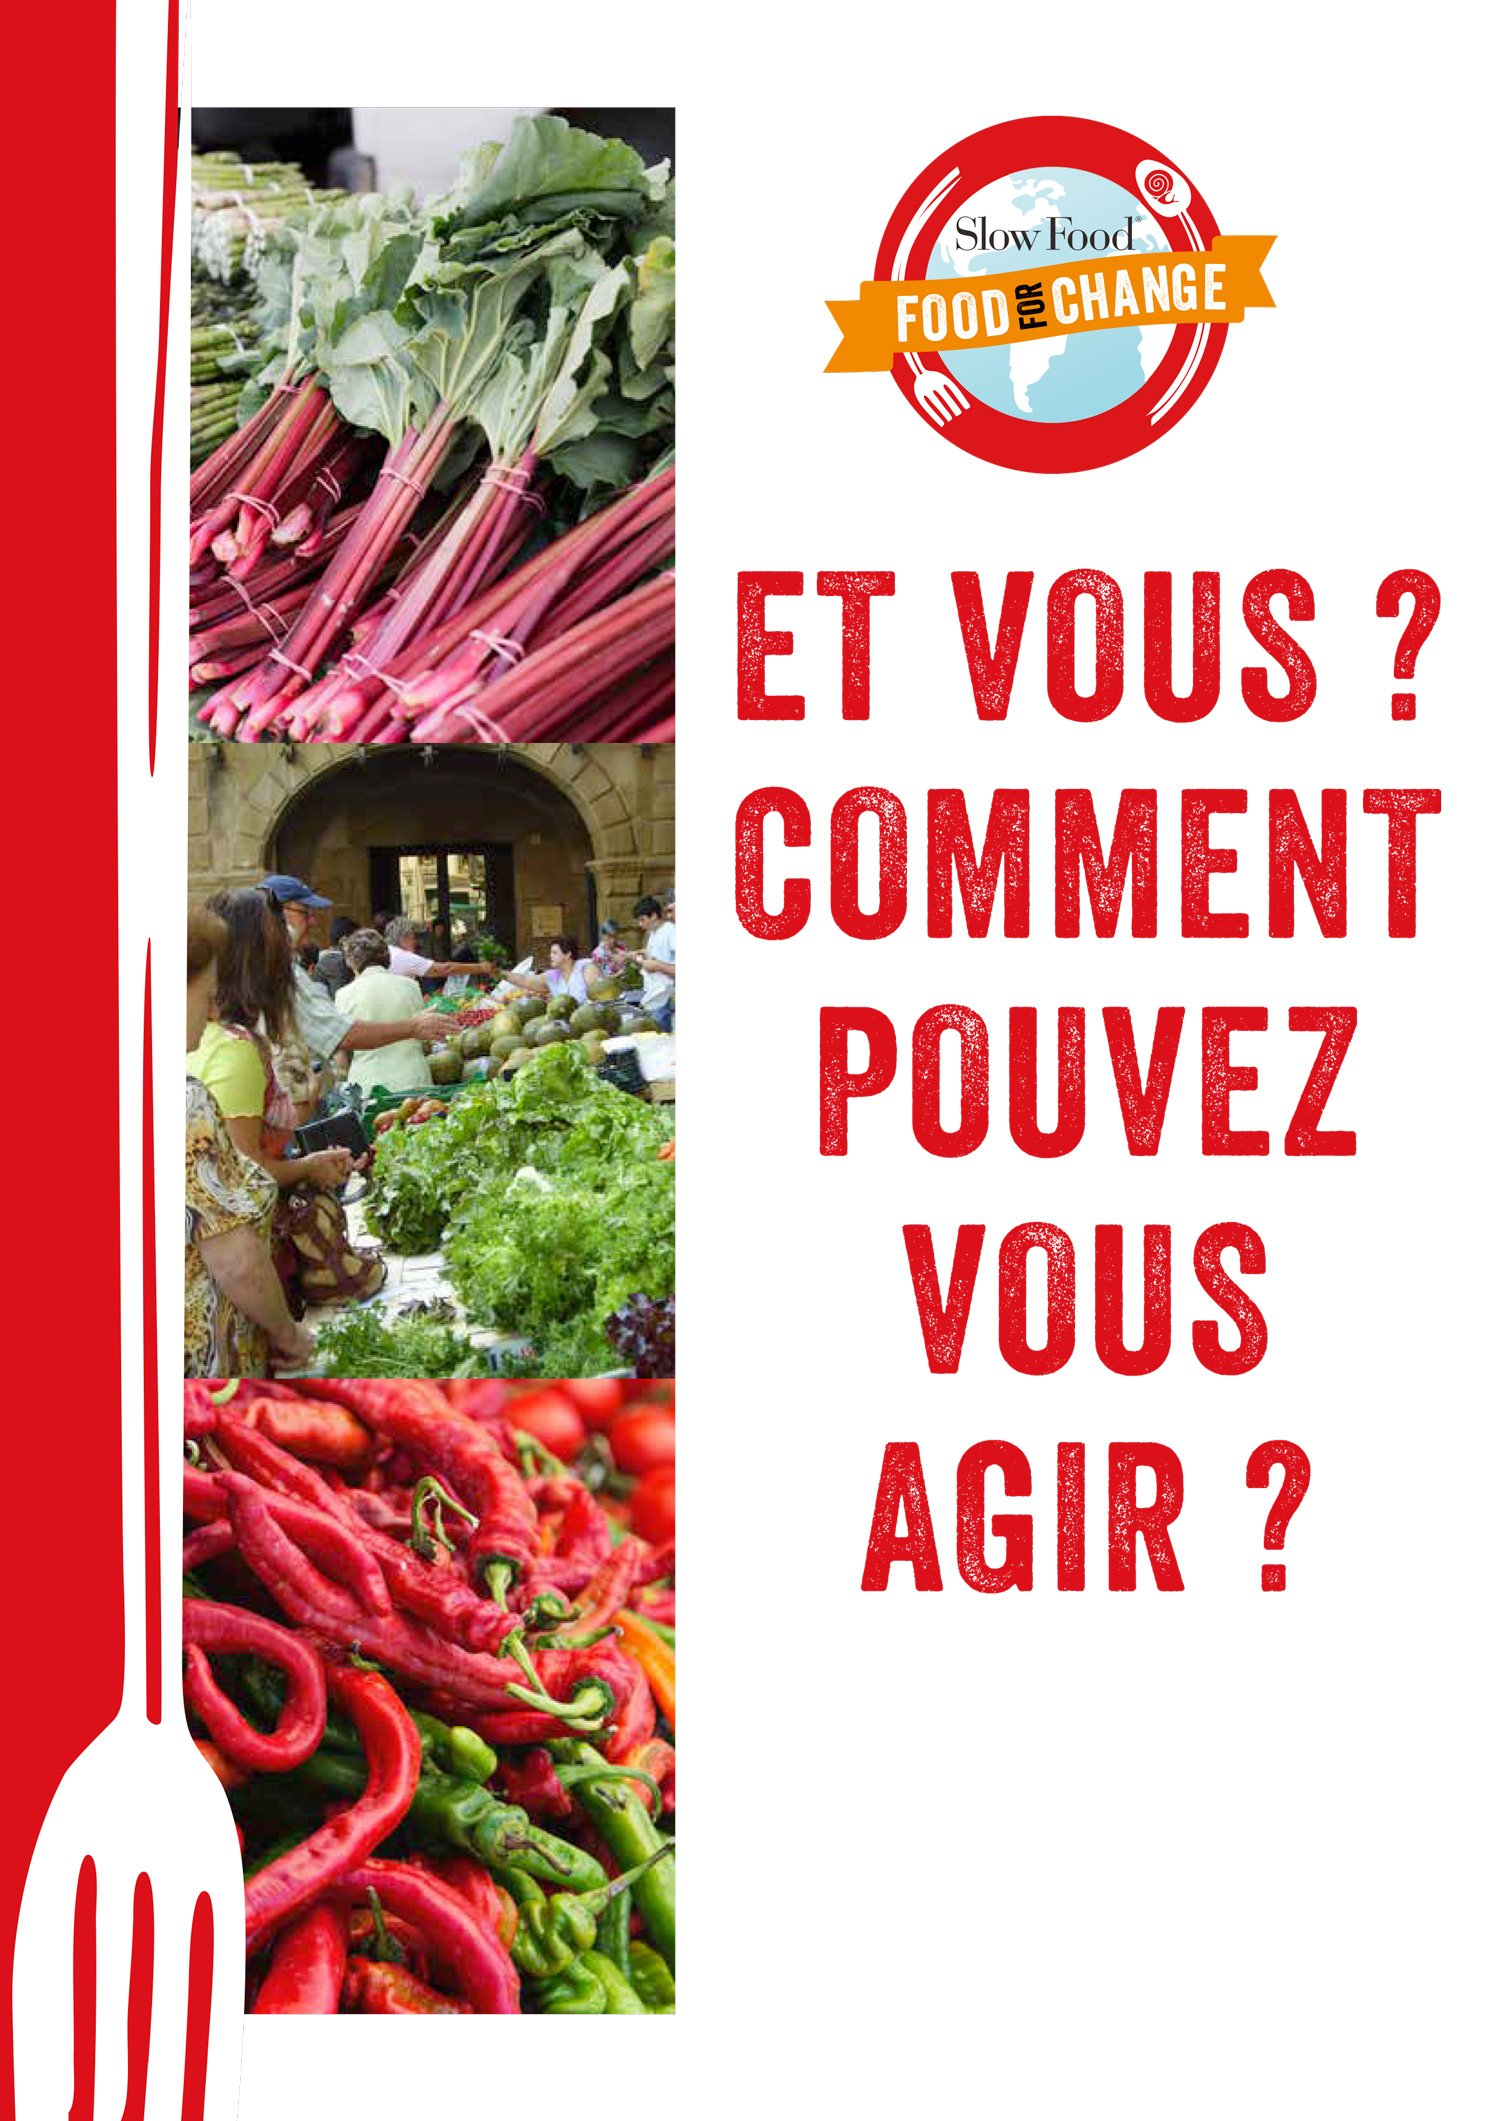 slowfood-campagne-slow-food-climat-alimentation-food-for-change-agir-1-1500x2121